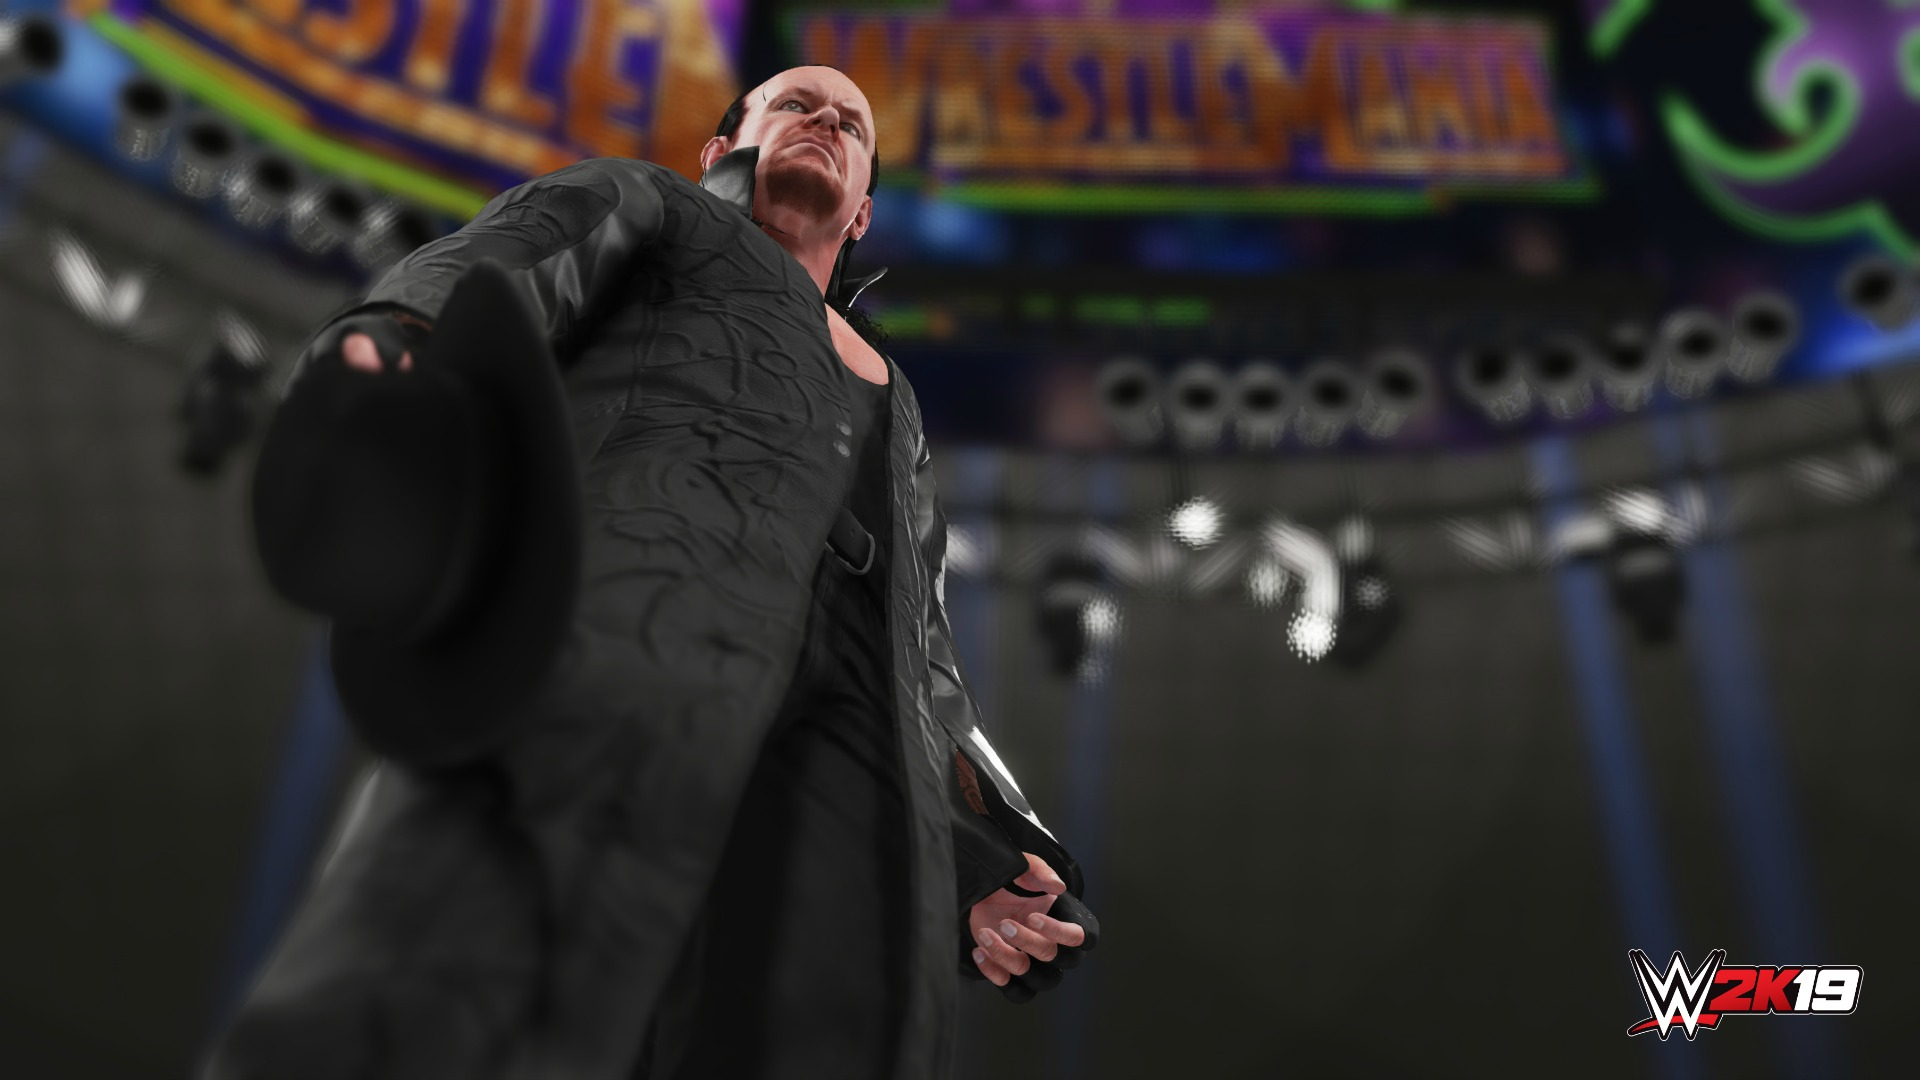 WWE 2K19 review: all the bang for your (young) bucks - VG247